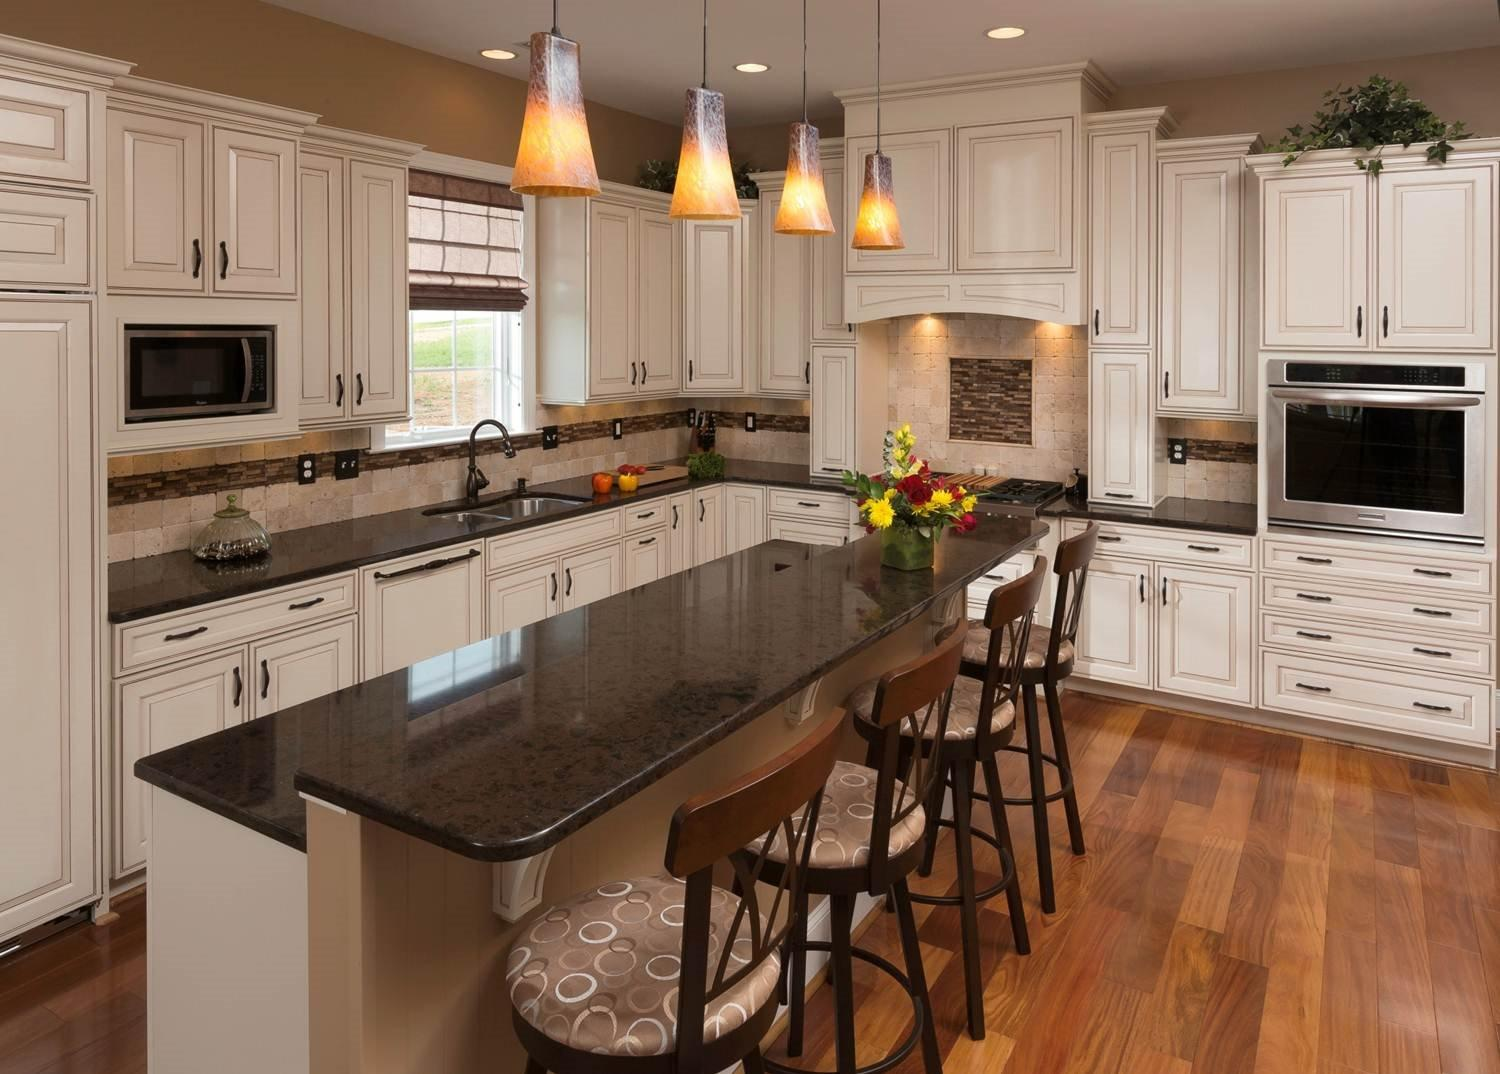 Reico Kitchen & Bath | Bathroom Remodeling White Plains MD